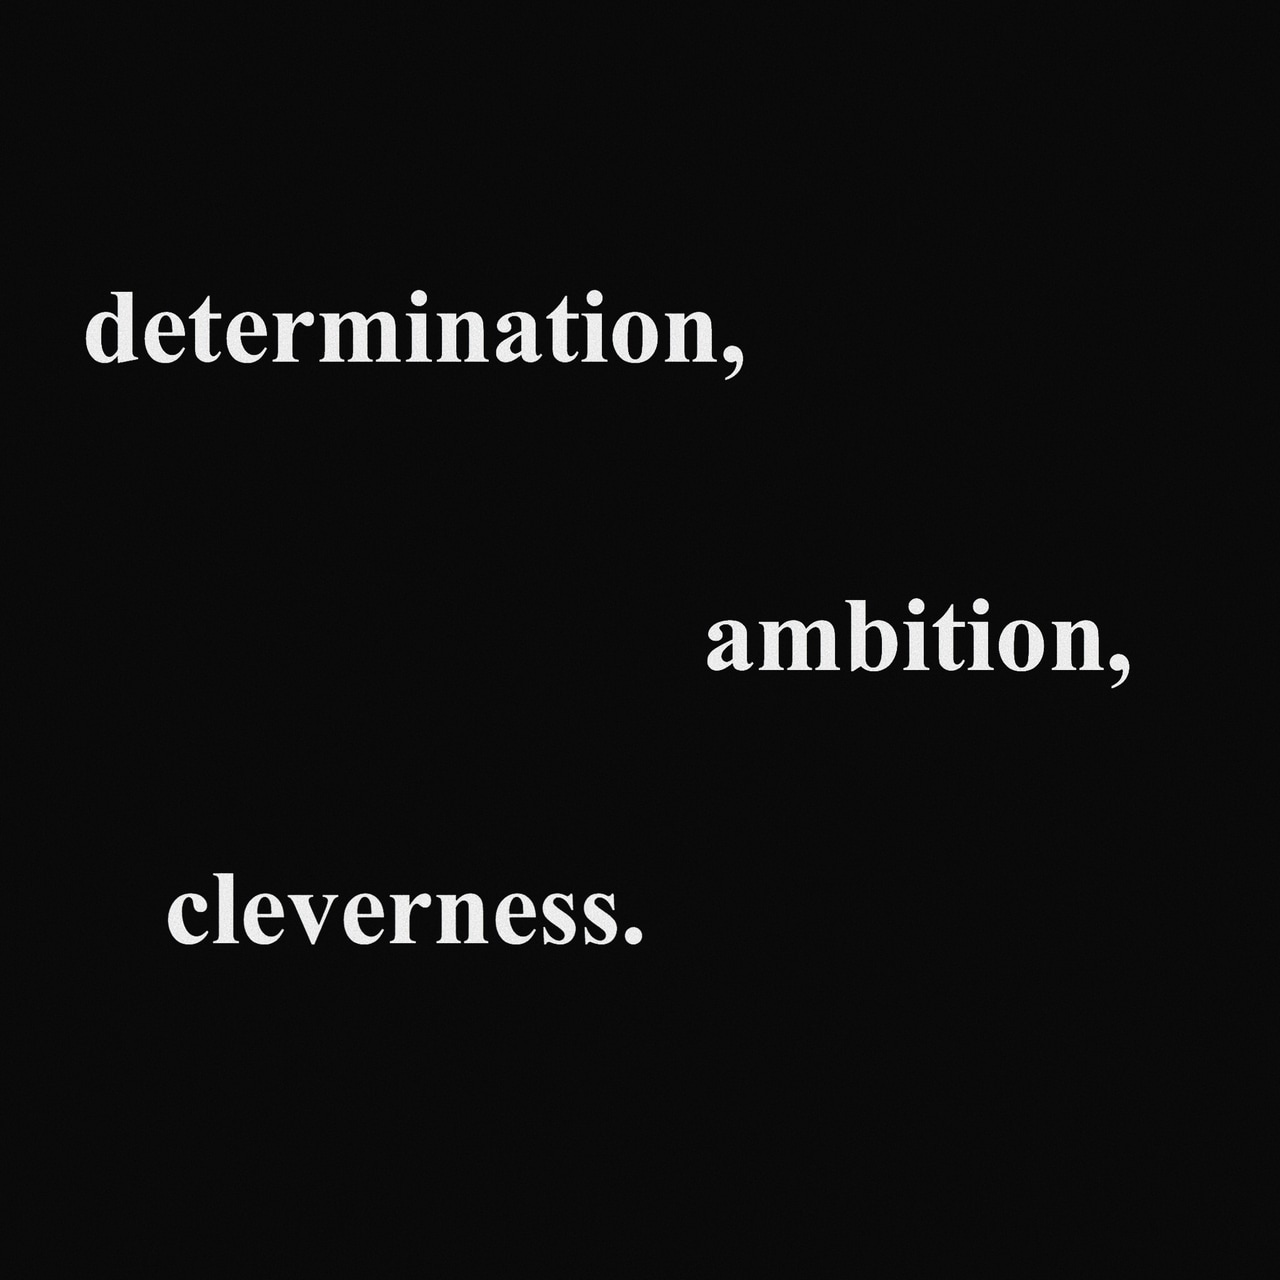 aesthetic, ambition, and determination image